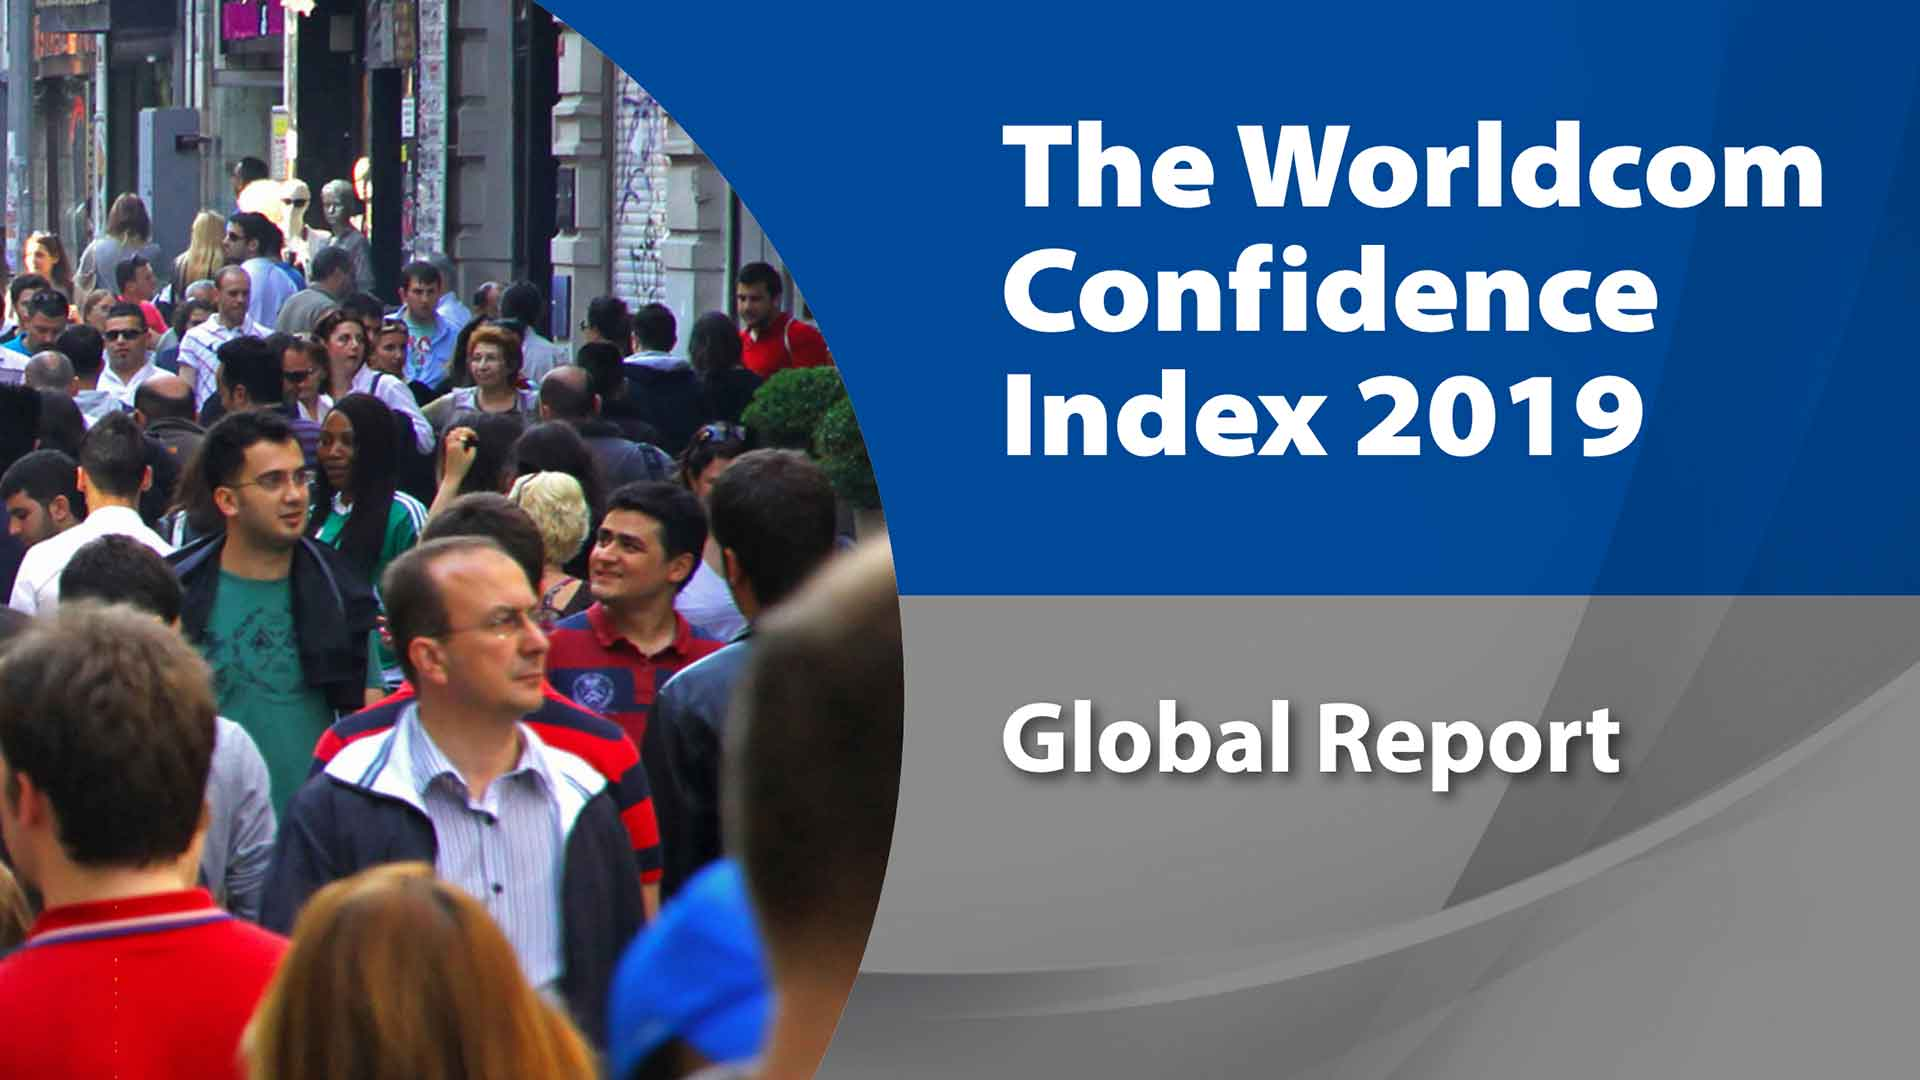 worldcom confidence Index 2019